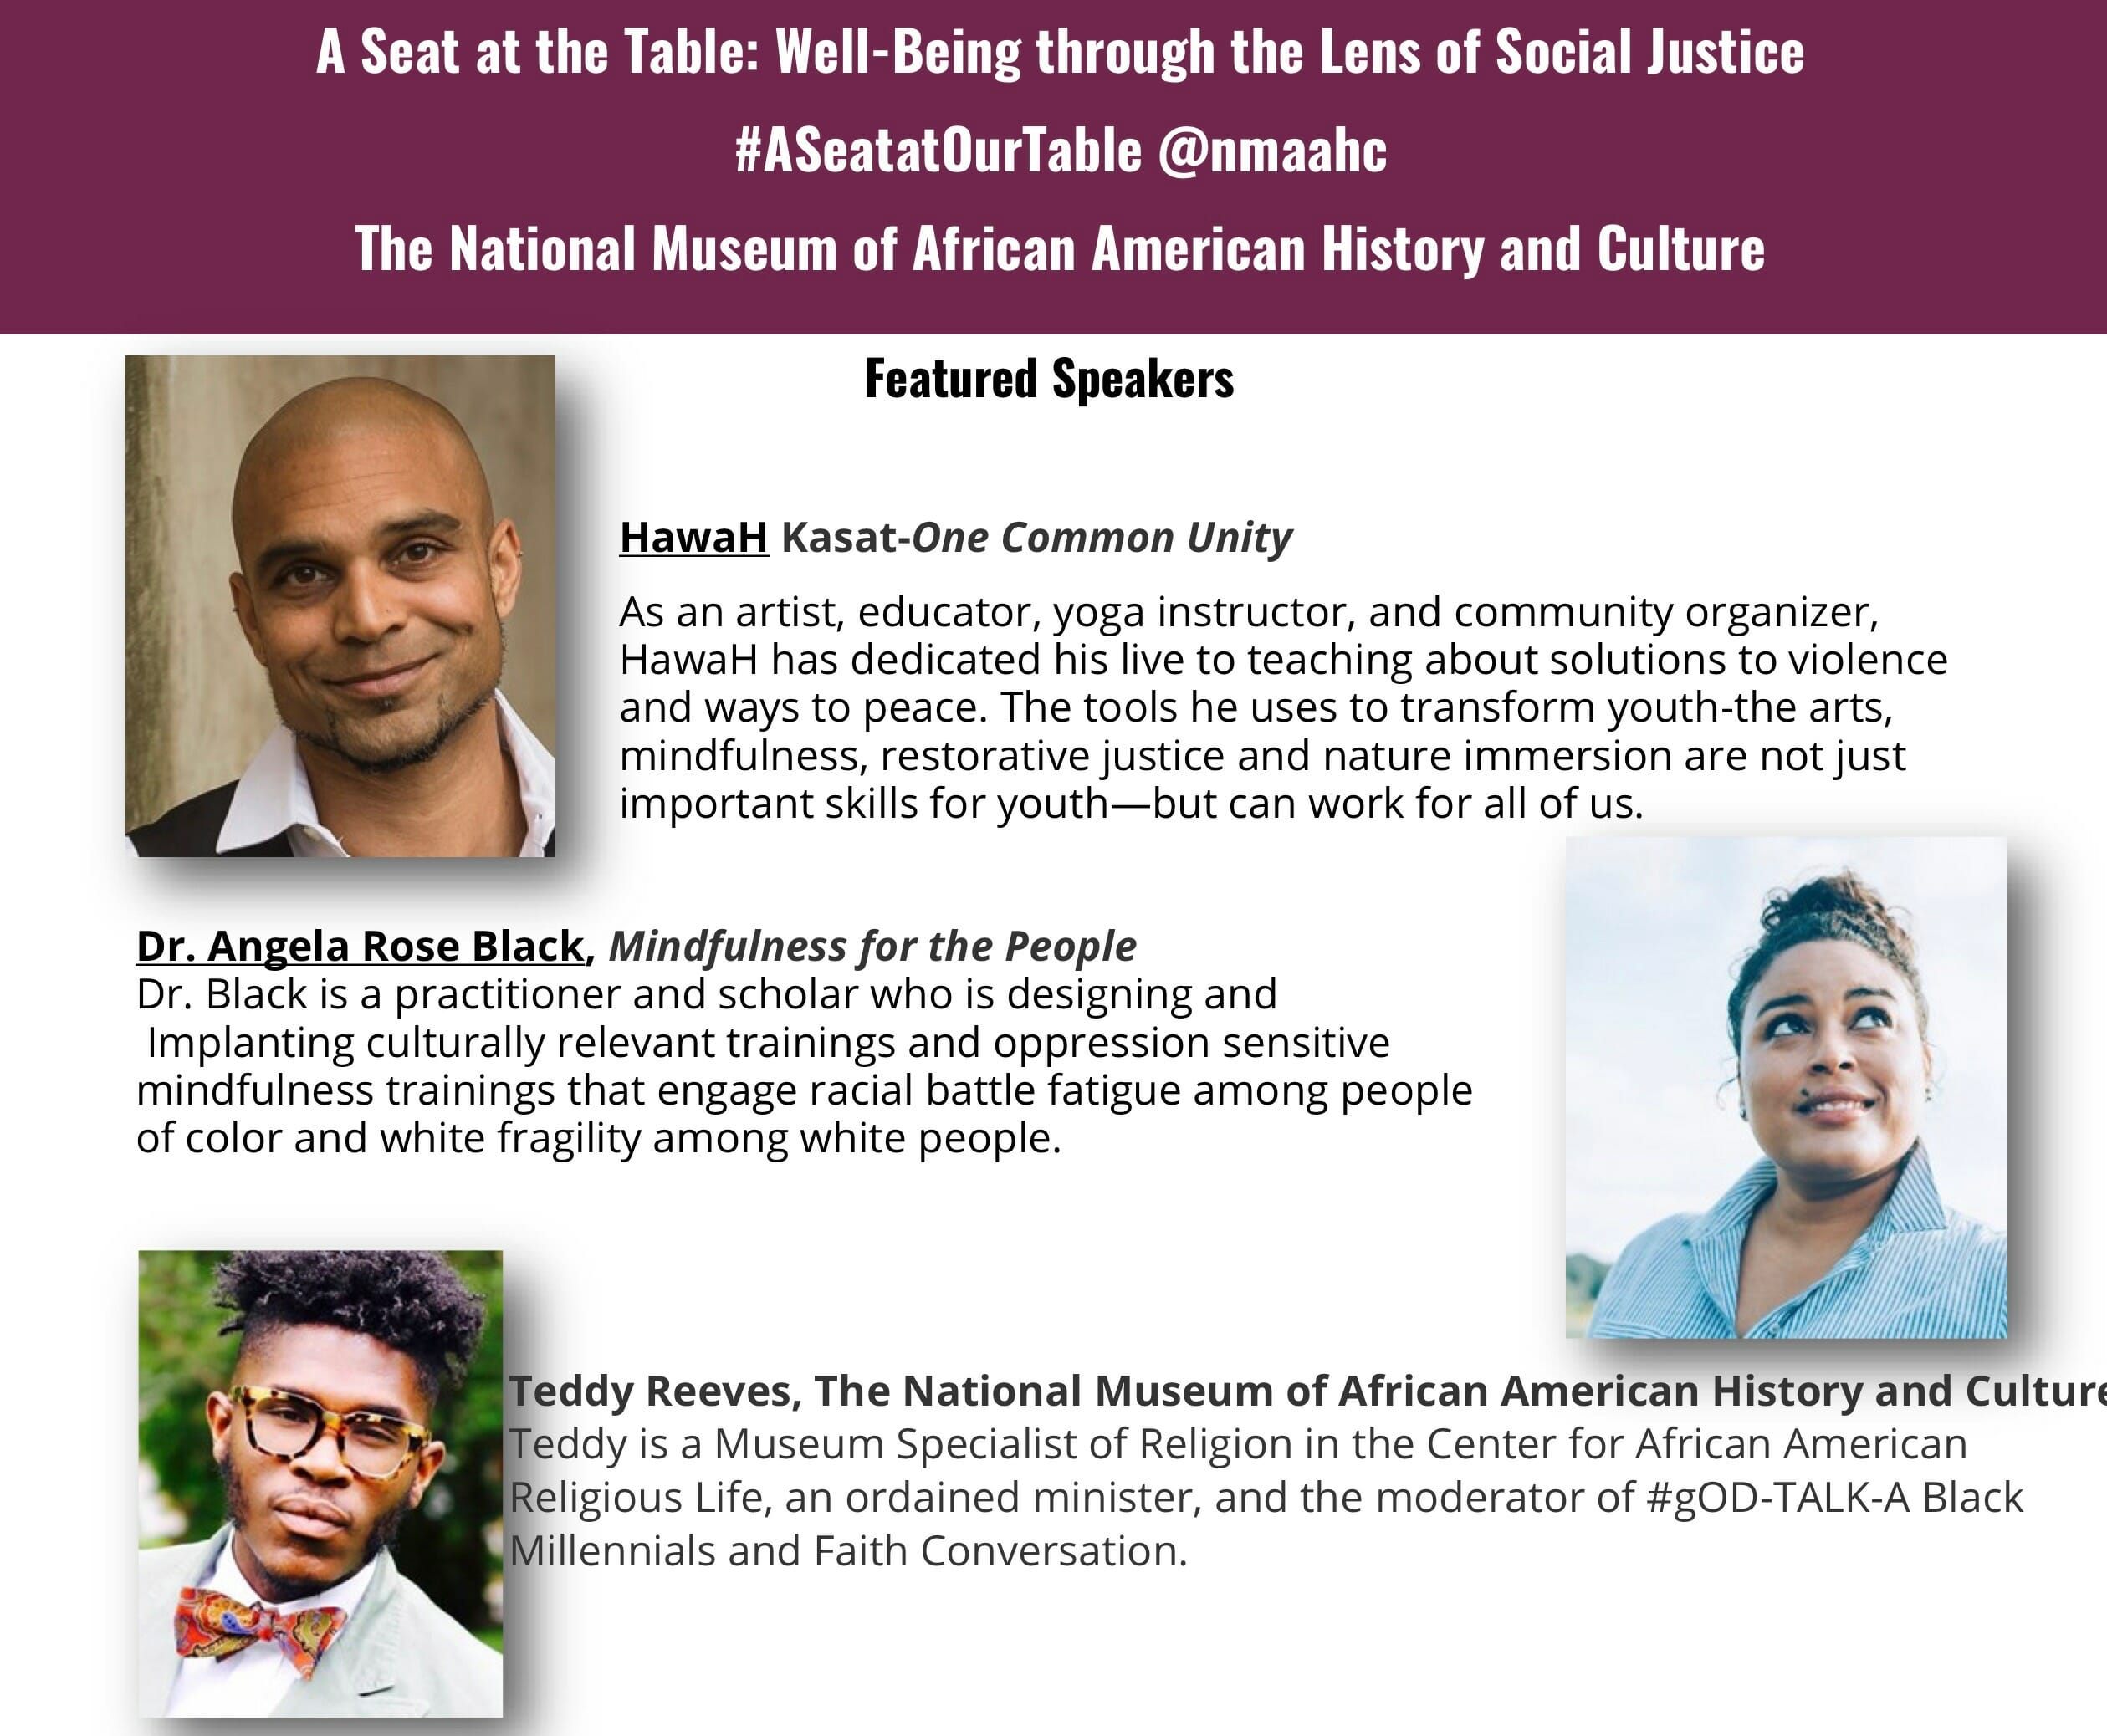 A Seat at the Table: Well-Being Through the Lens of Social Justice